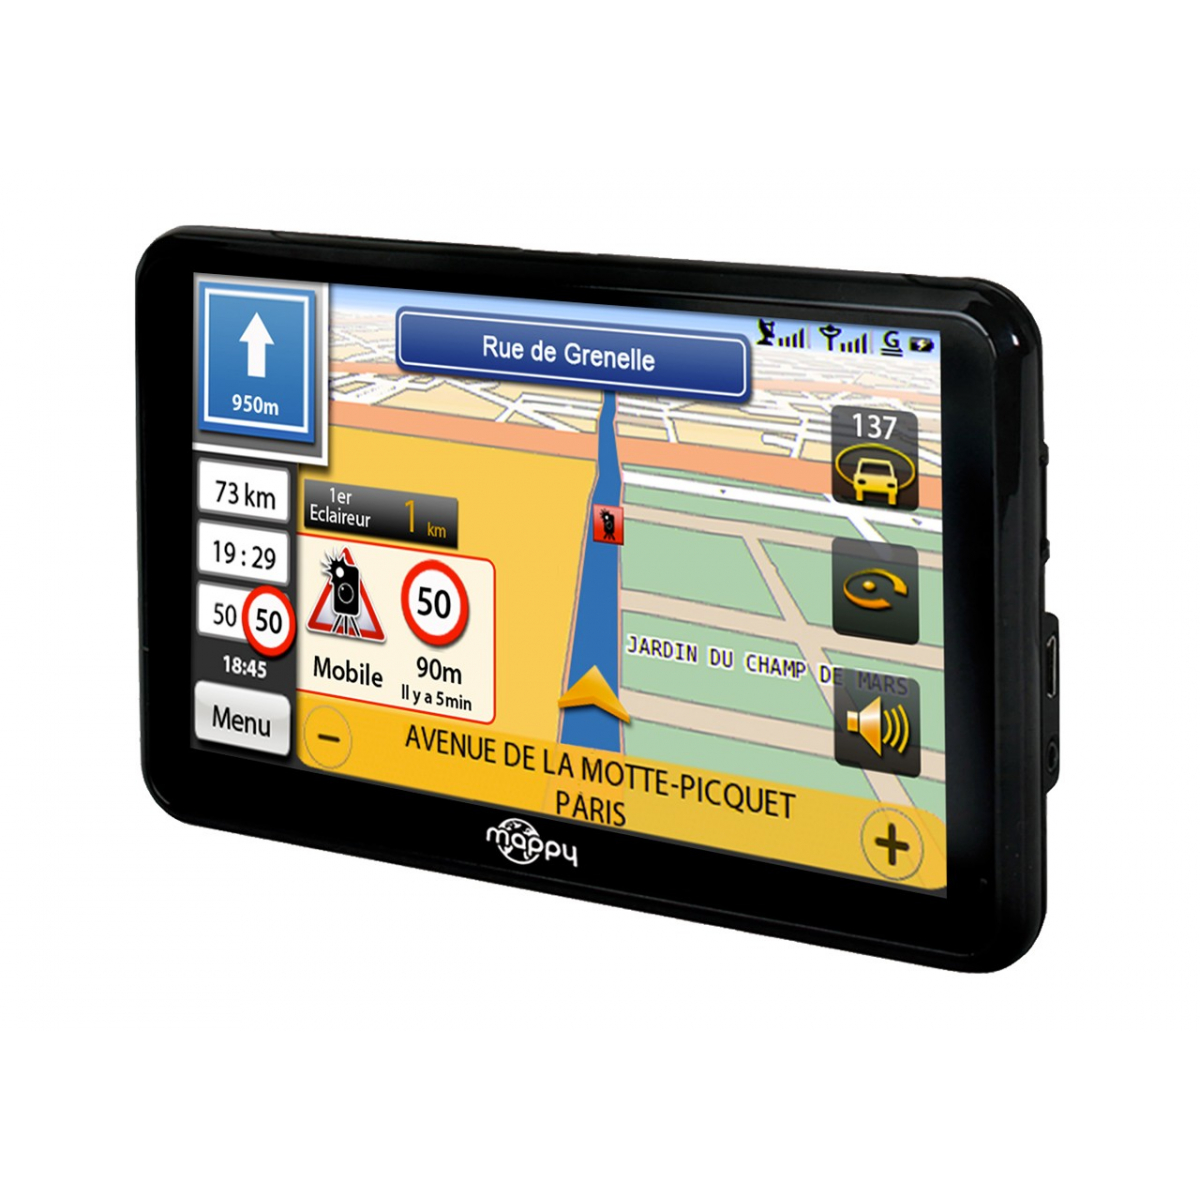 gps mappy ulti 590 connect 5 europe produits gps auto mappy. Black Bedroom Furniture Sets. Home Design Ideas